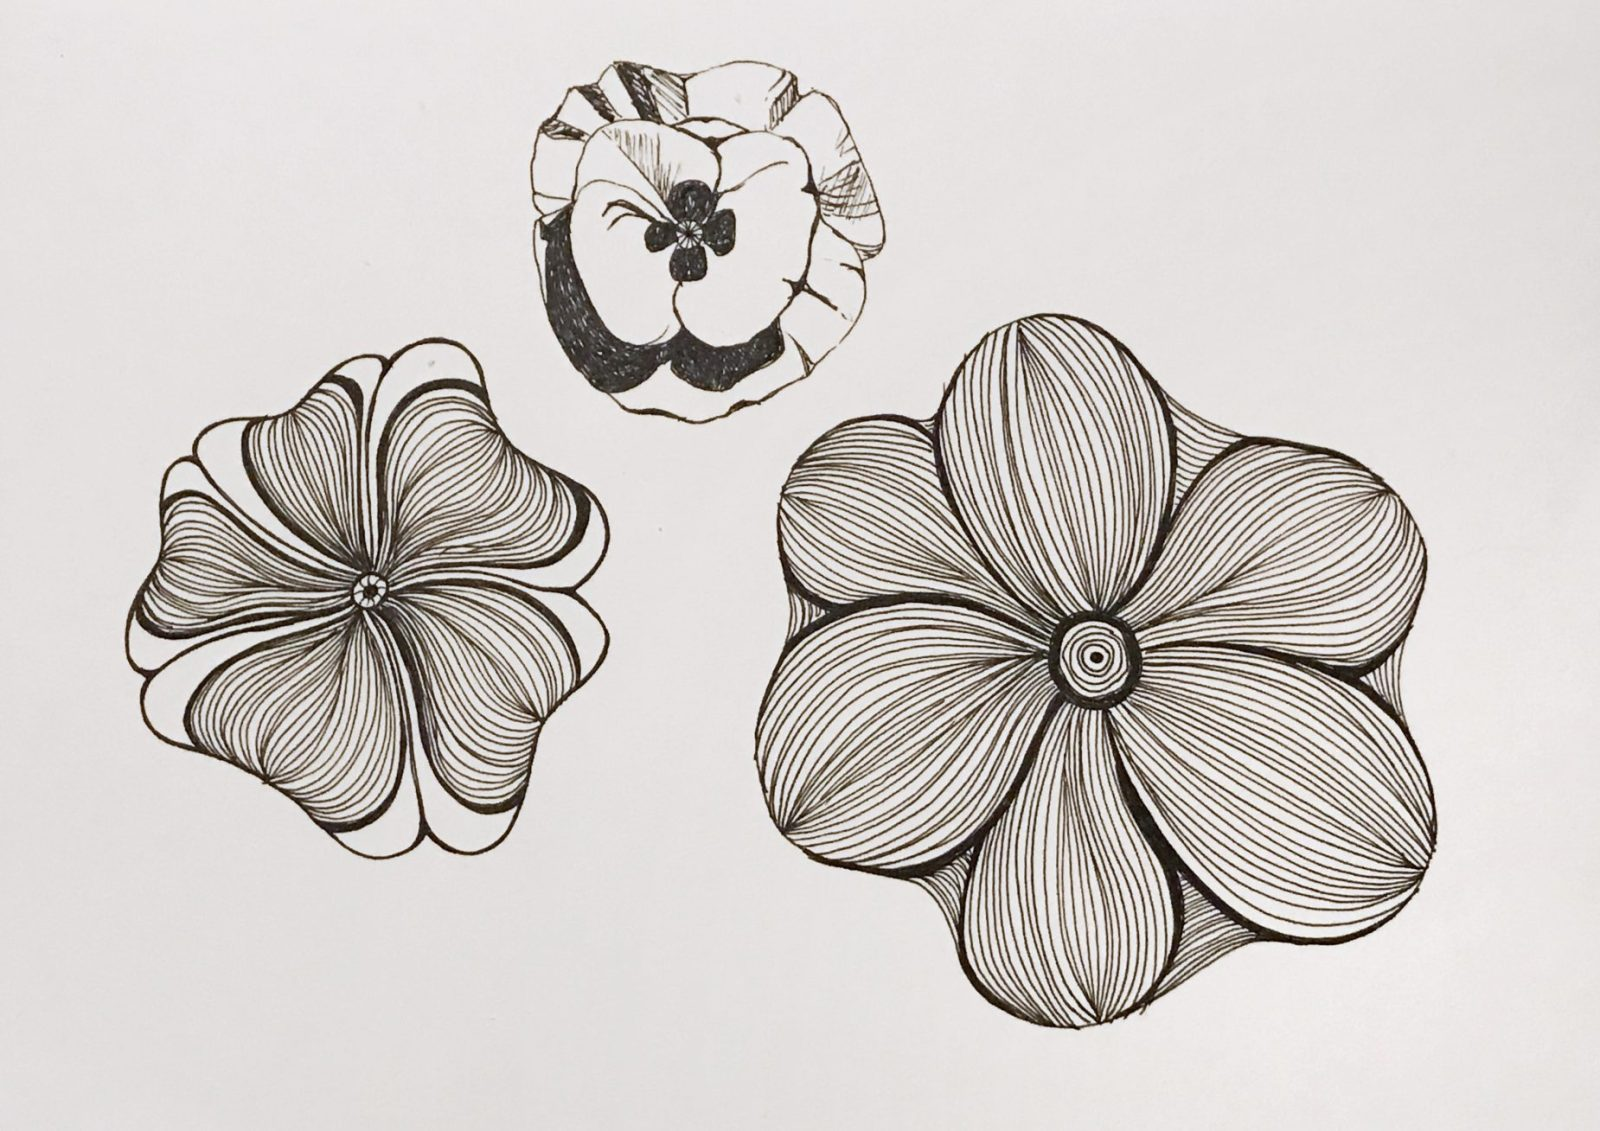 flower doodles, weekend doodles, creativity books